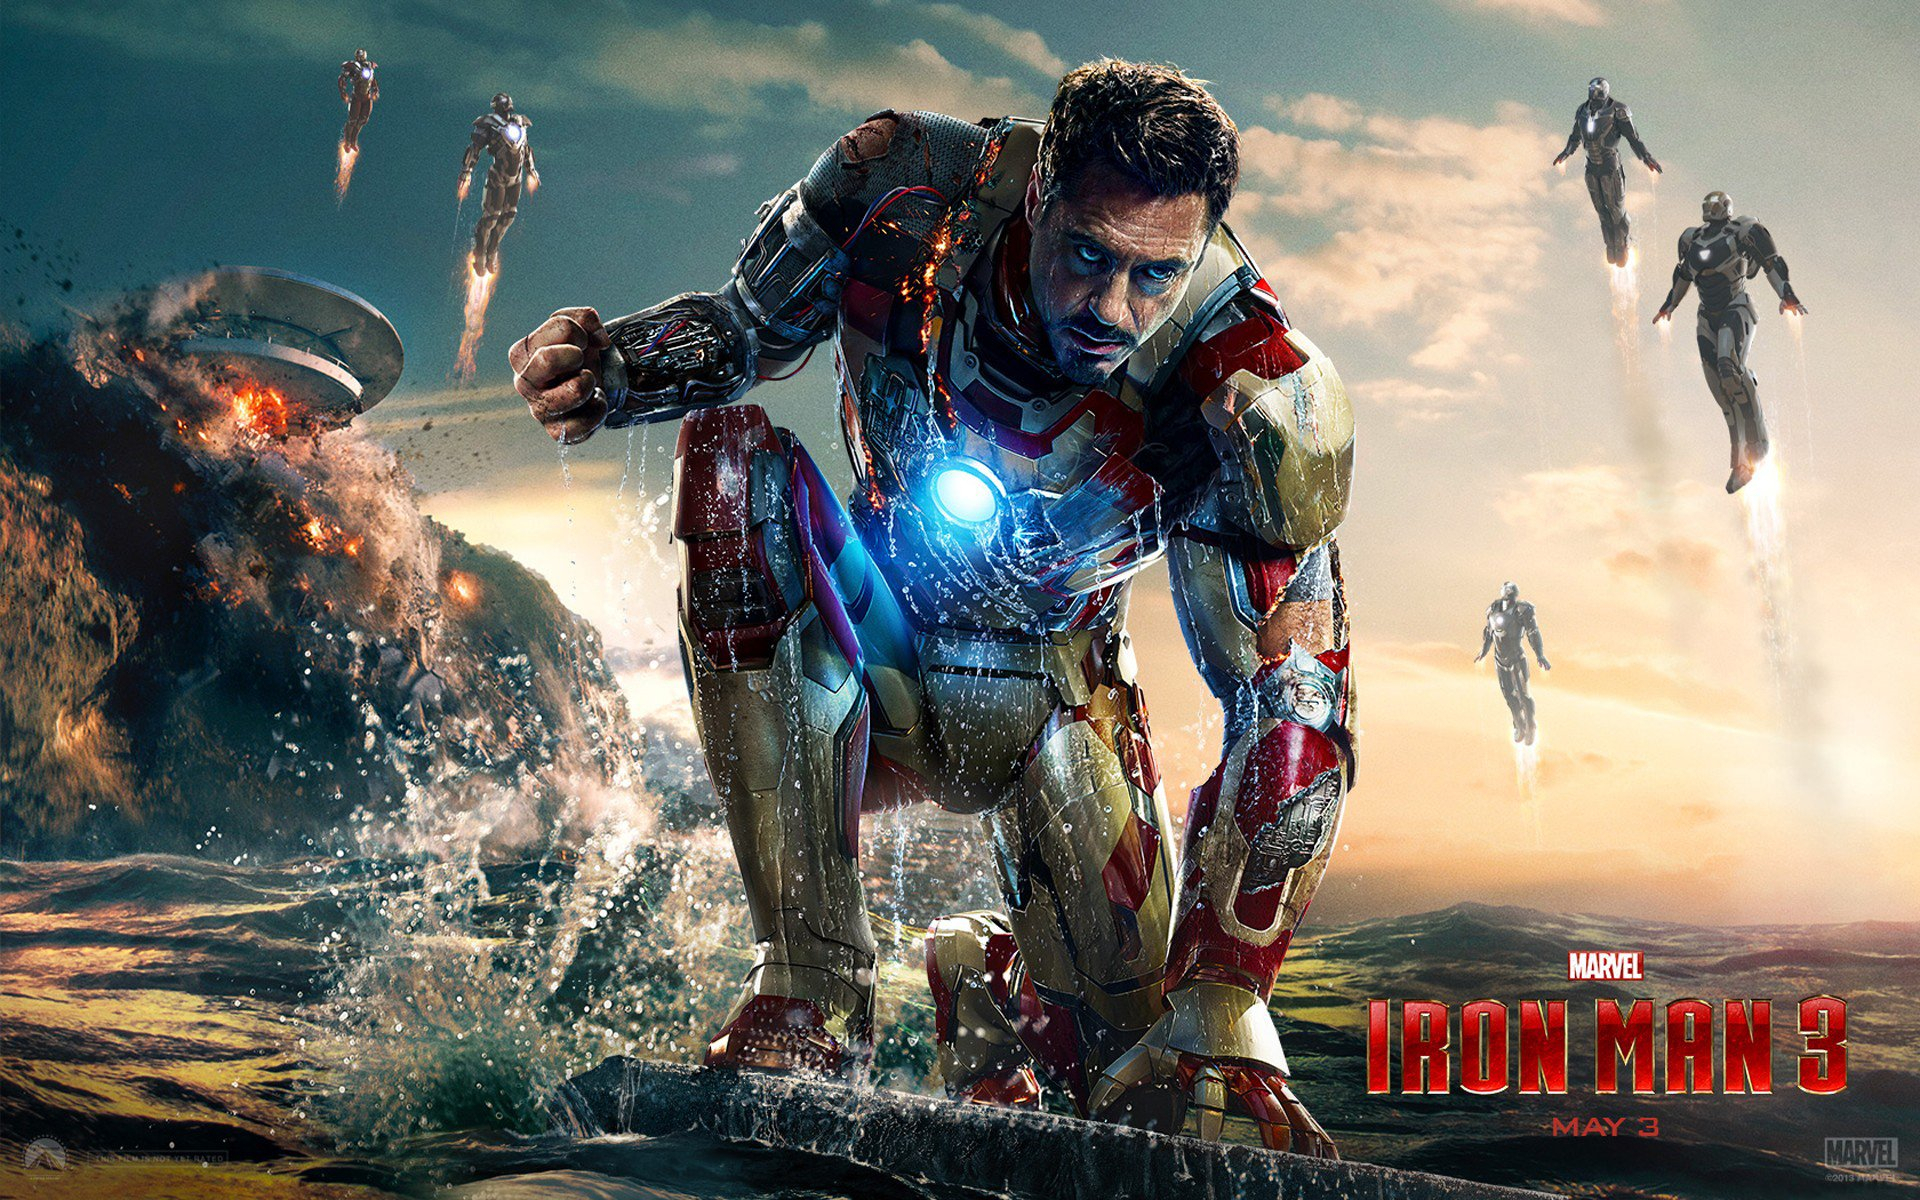 122 iron man 3 hd wallpapers | background images - wallpaper abyss